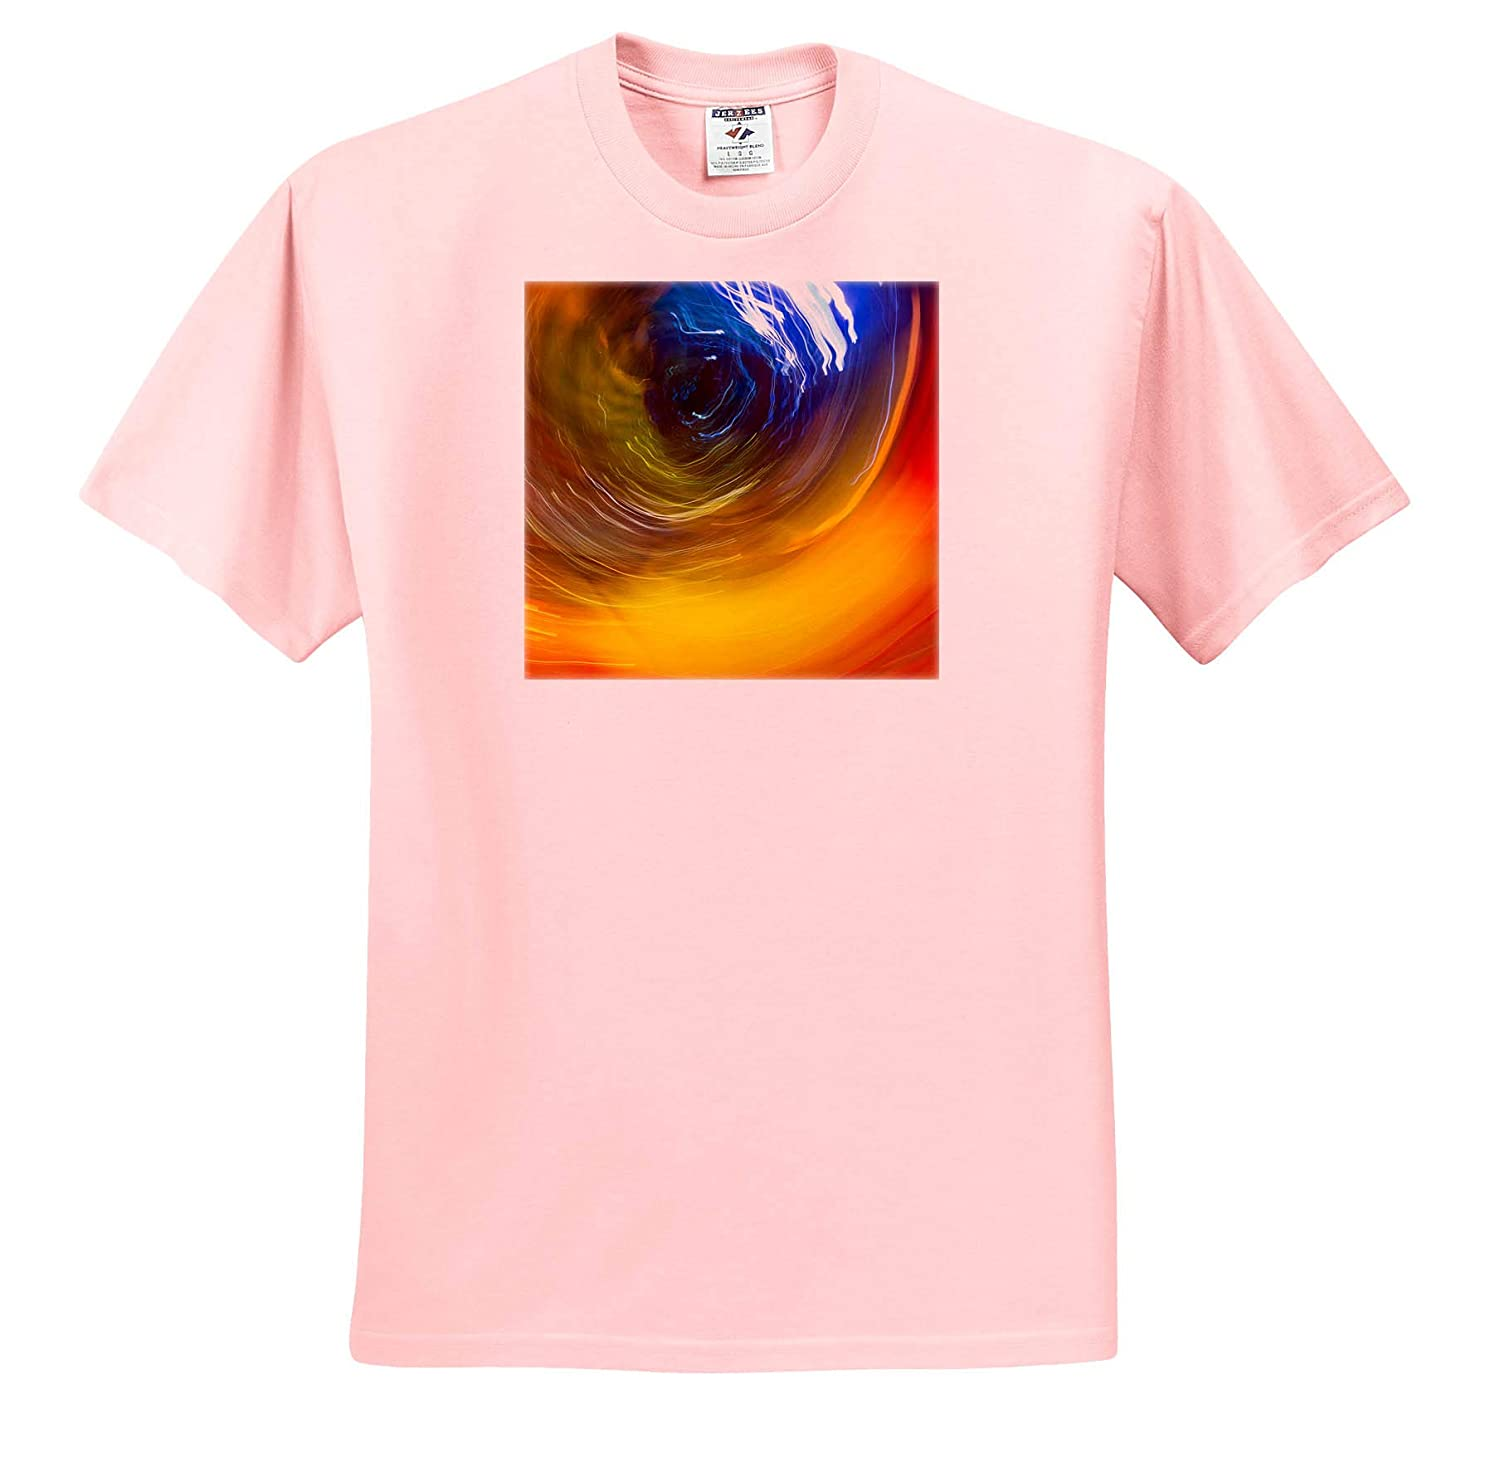 Adult T-Shirt XL Abstracts 3dRose Danita Delimont Colorful Glass with Blurred Motion ts/_315188